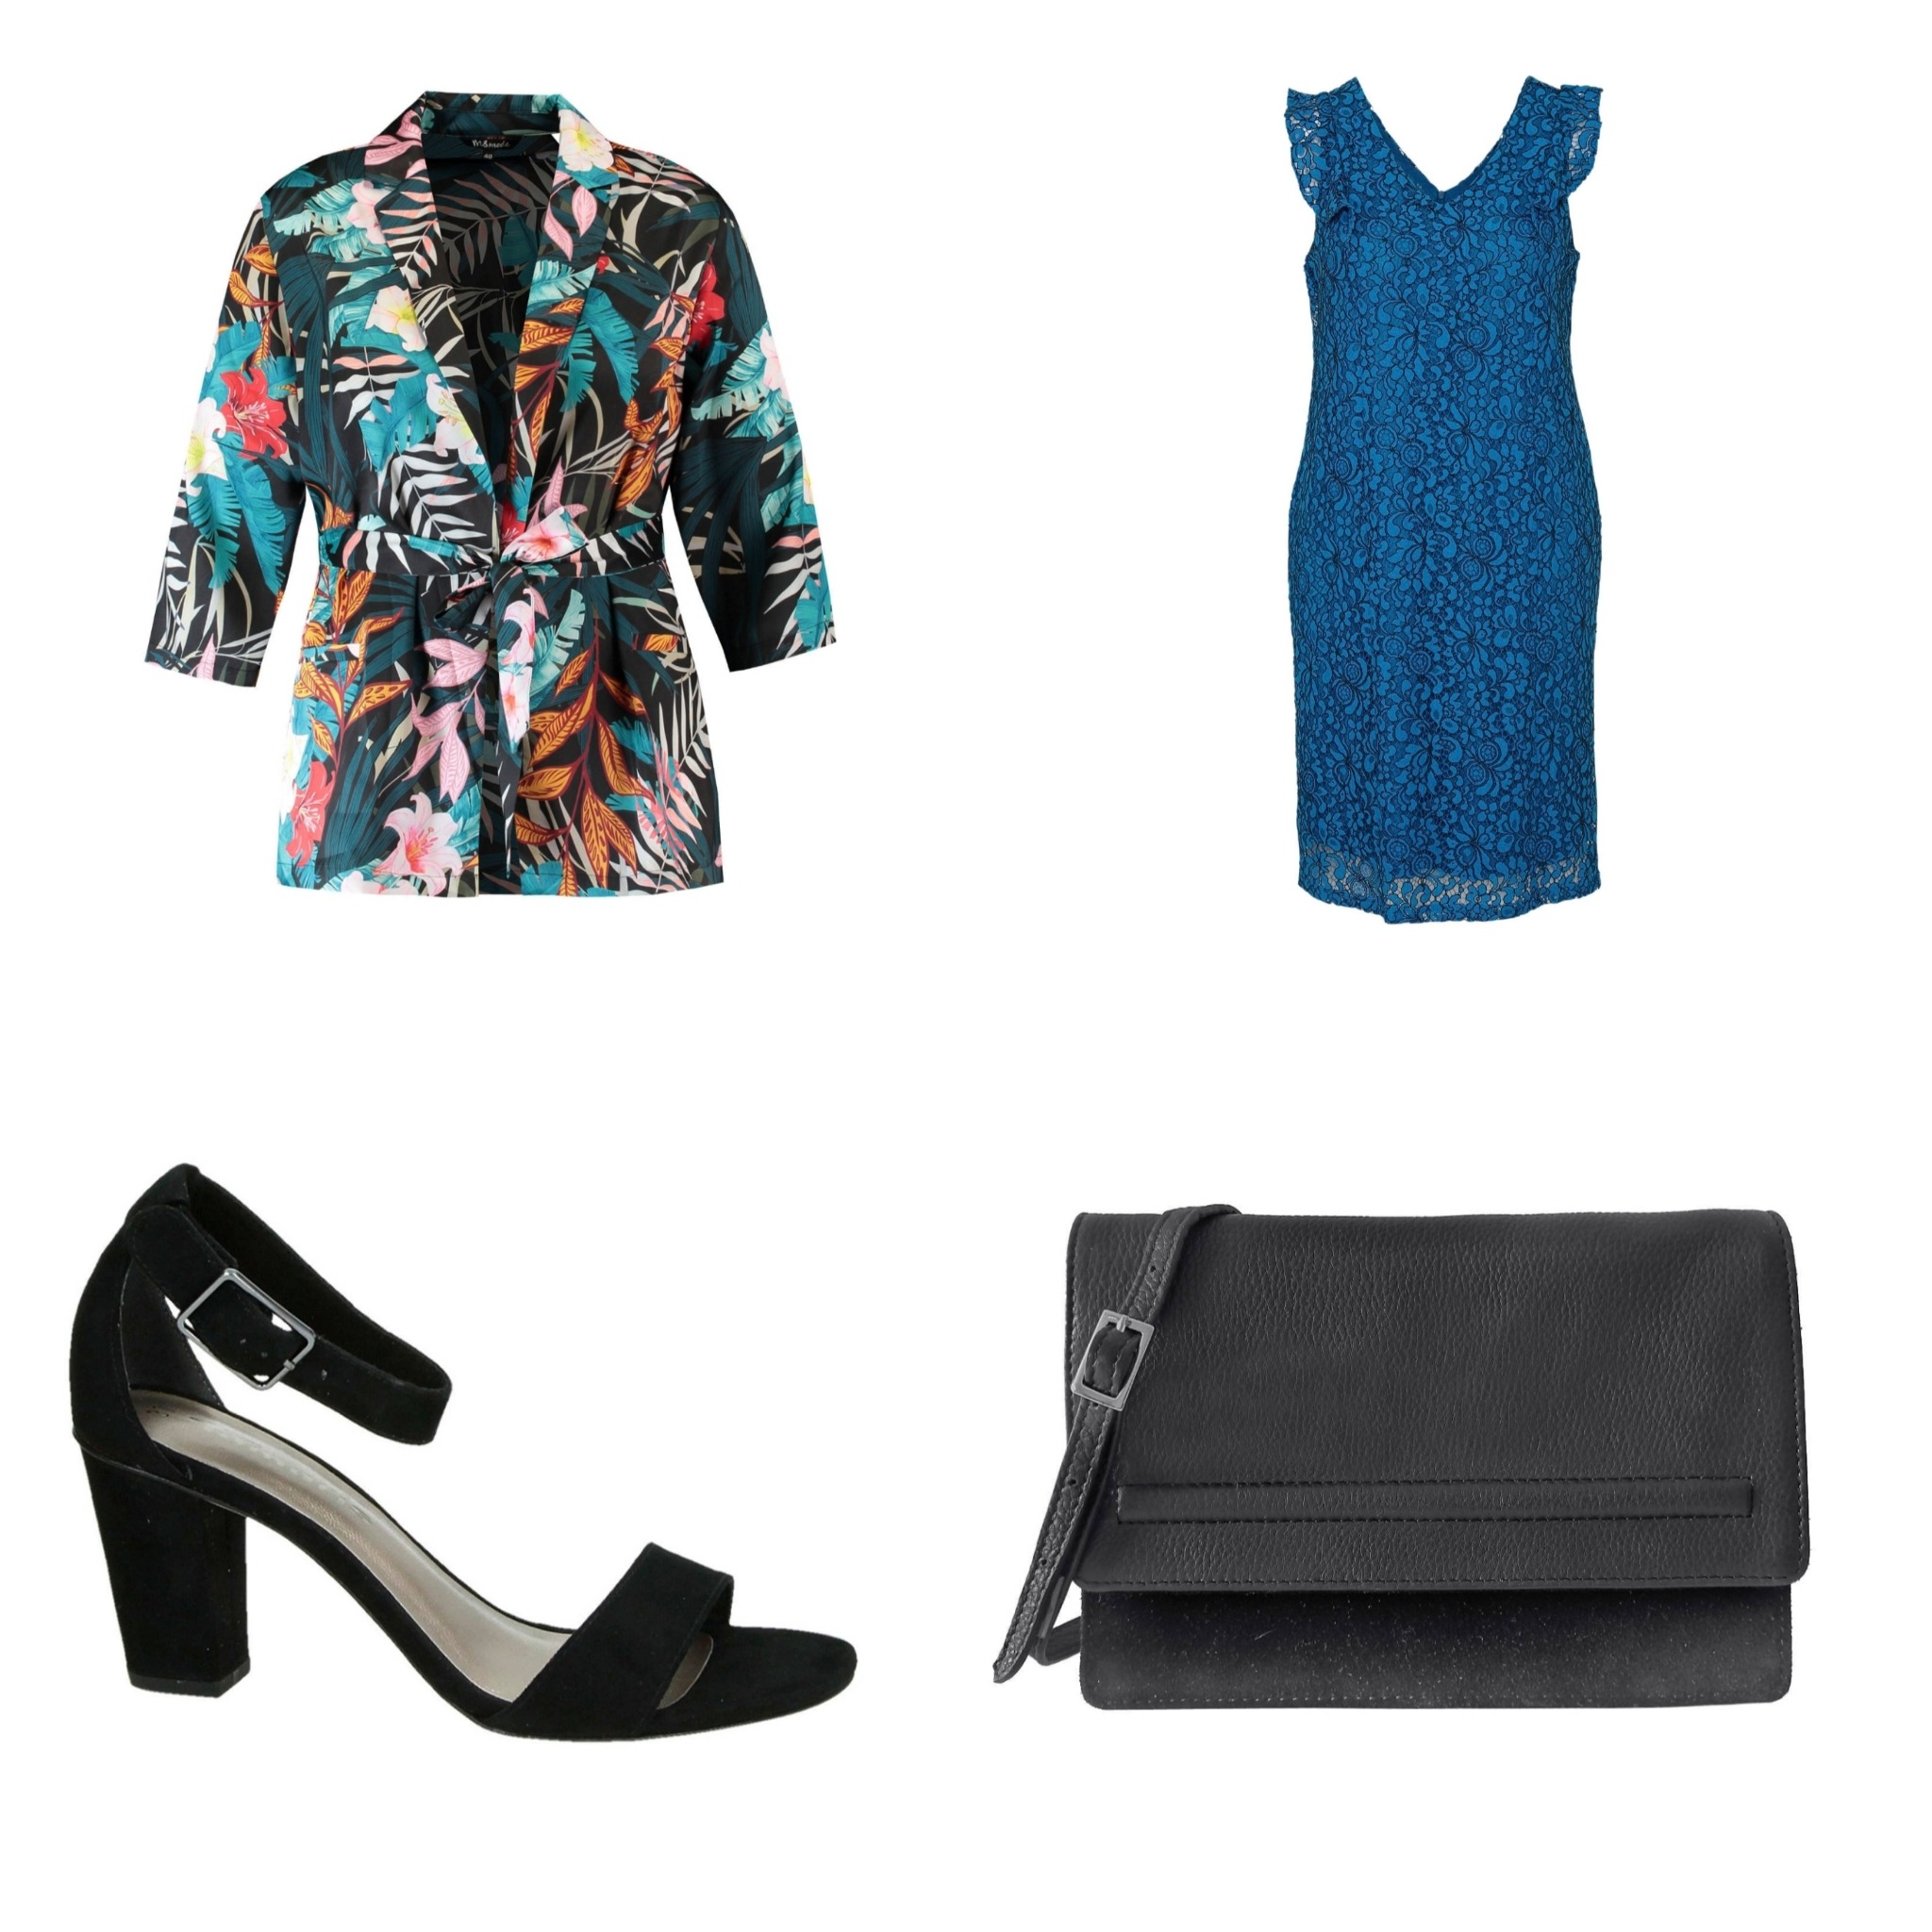 Plus Size Fashion Friday || The perfect dress